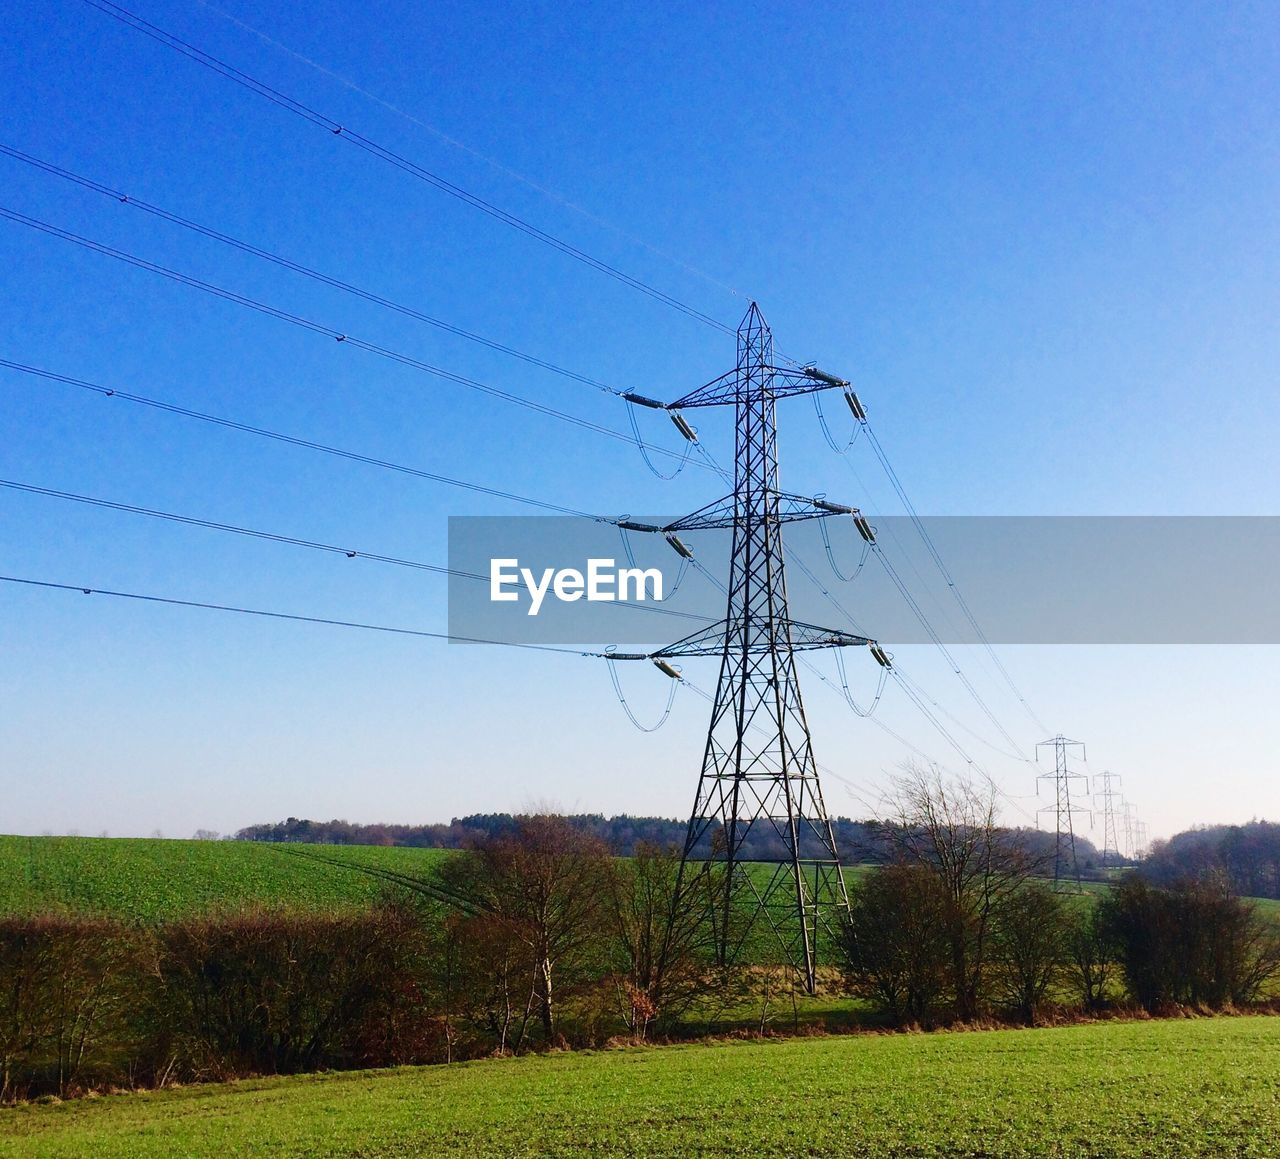 cable, electricity, connection, electricity pylon, power supply, fuel and power generation, power line, grass, field, no people, day, outdoors, landscape, nature, tranquility, clear sky, tree, low angle view, technology, sky, beauty in nature